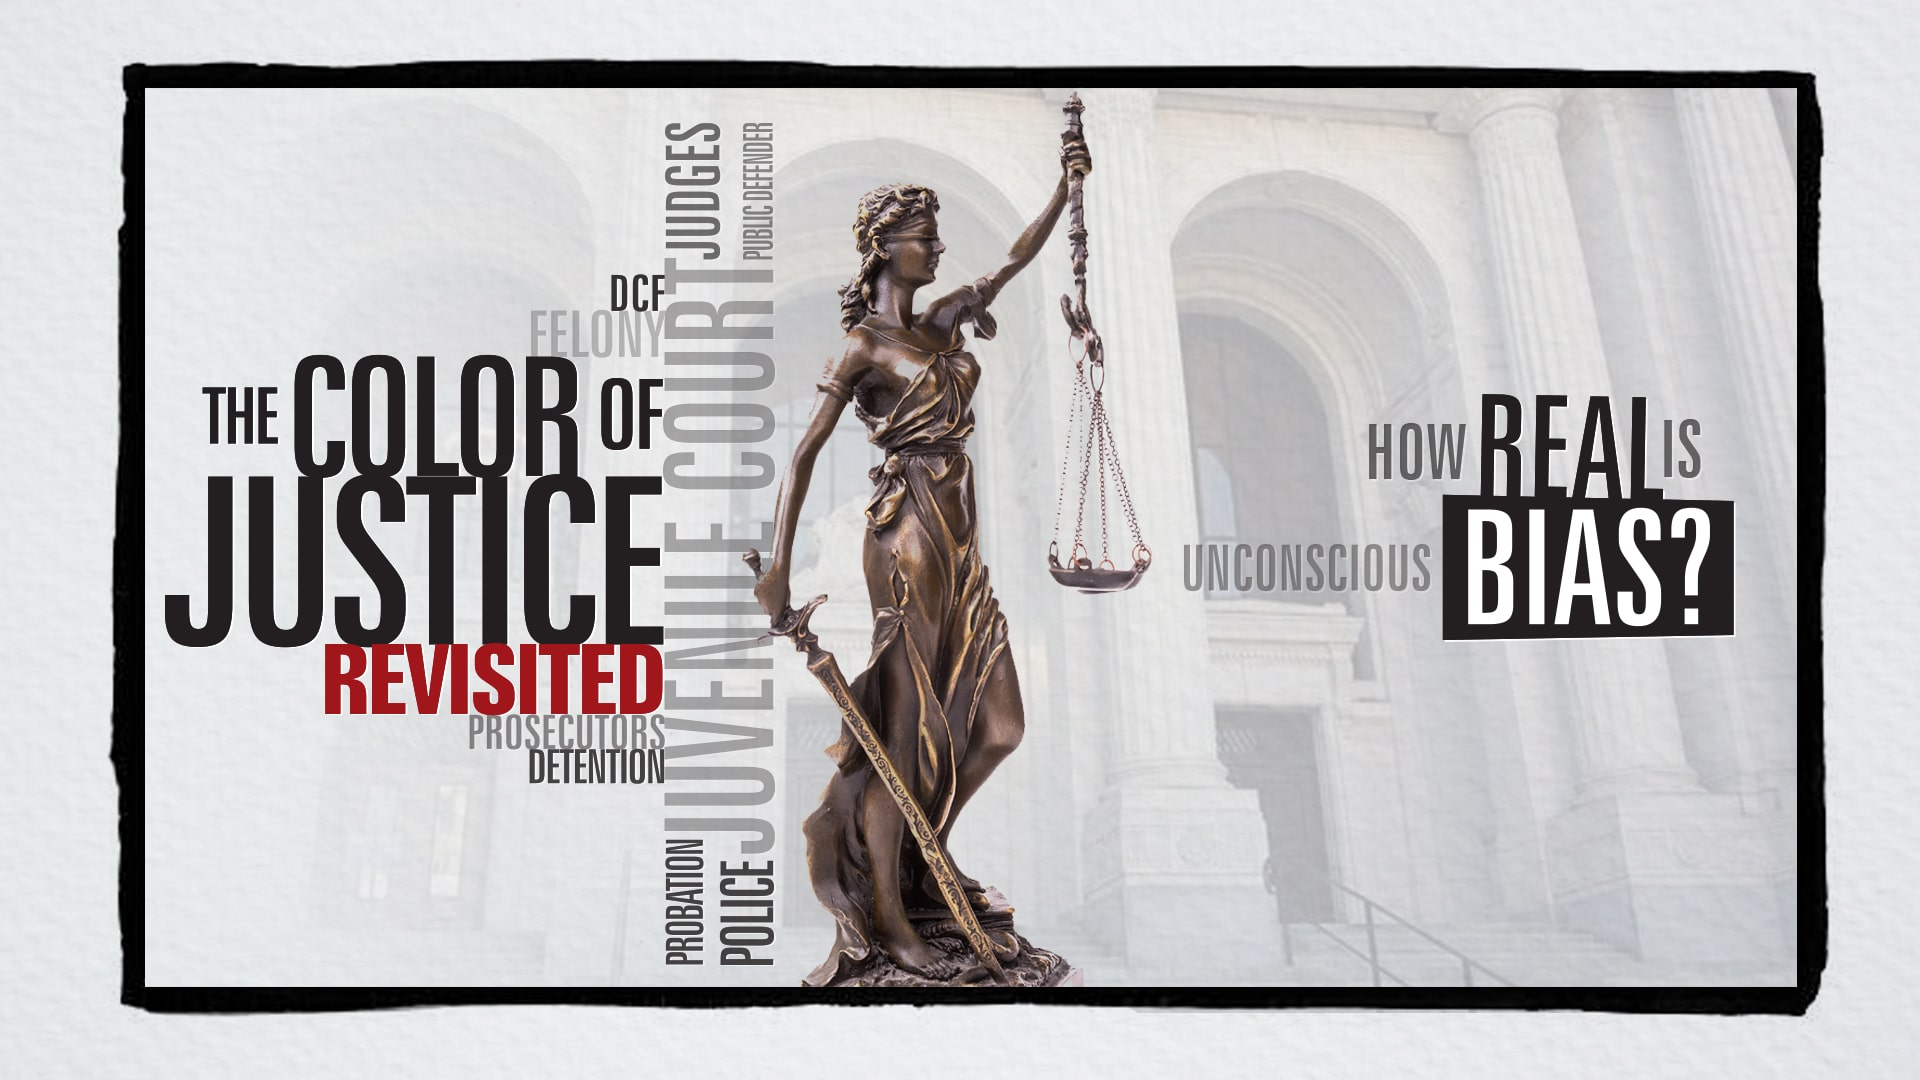 color of justice revisited open